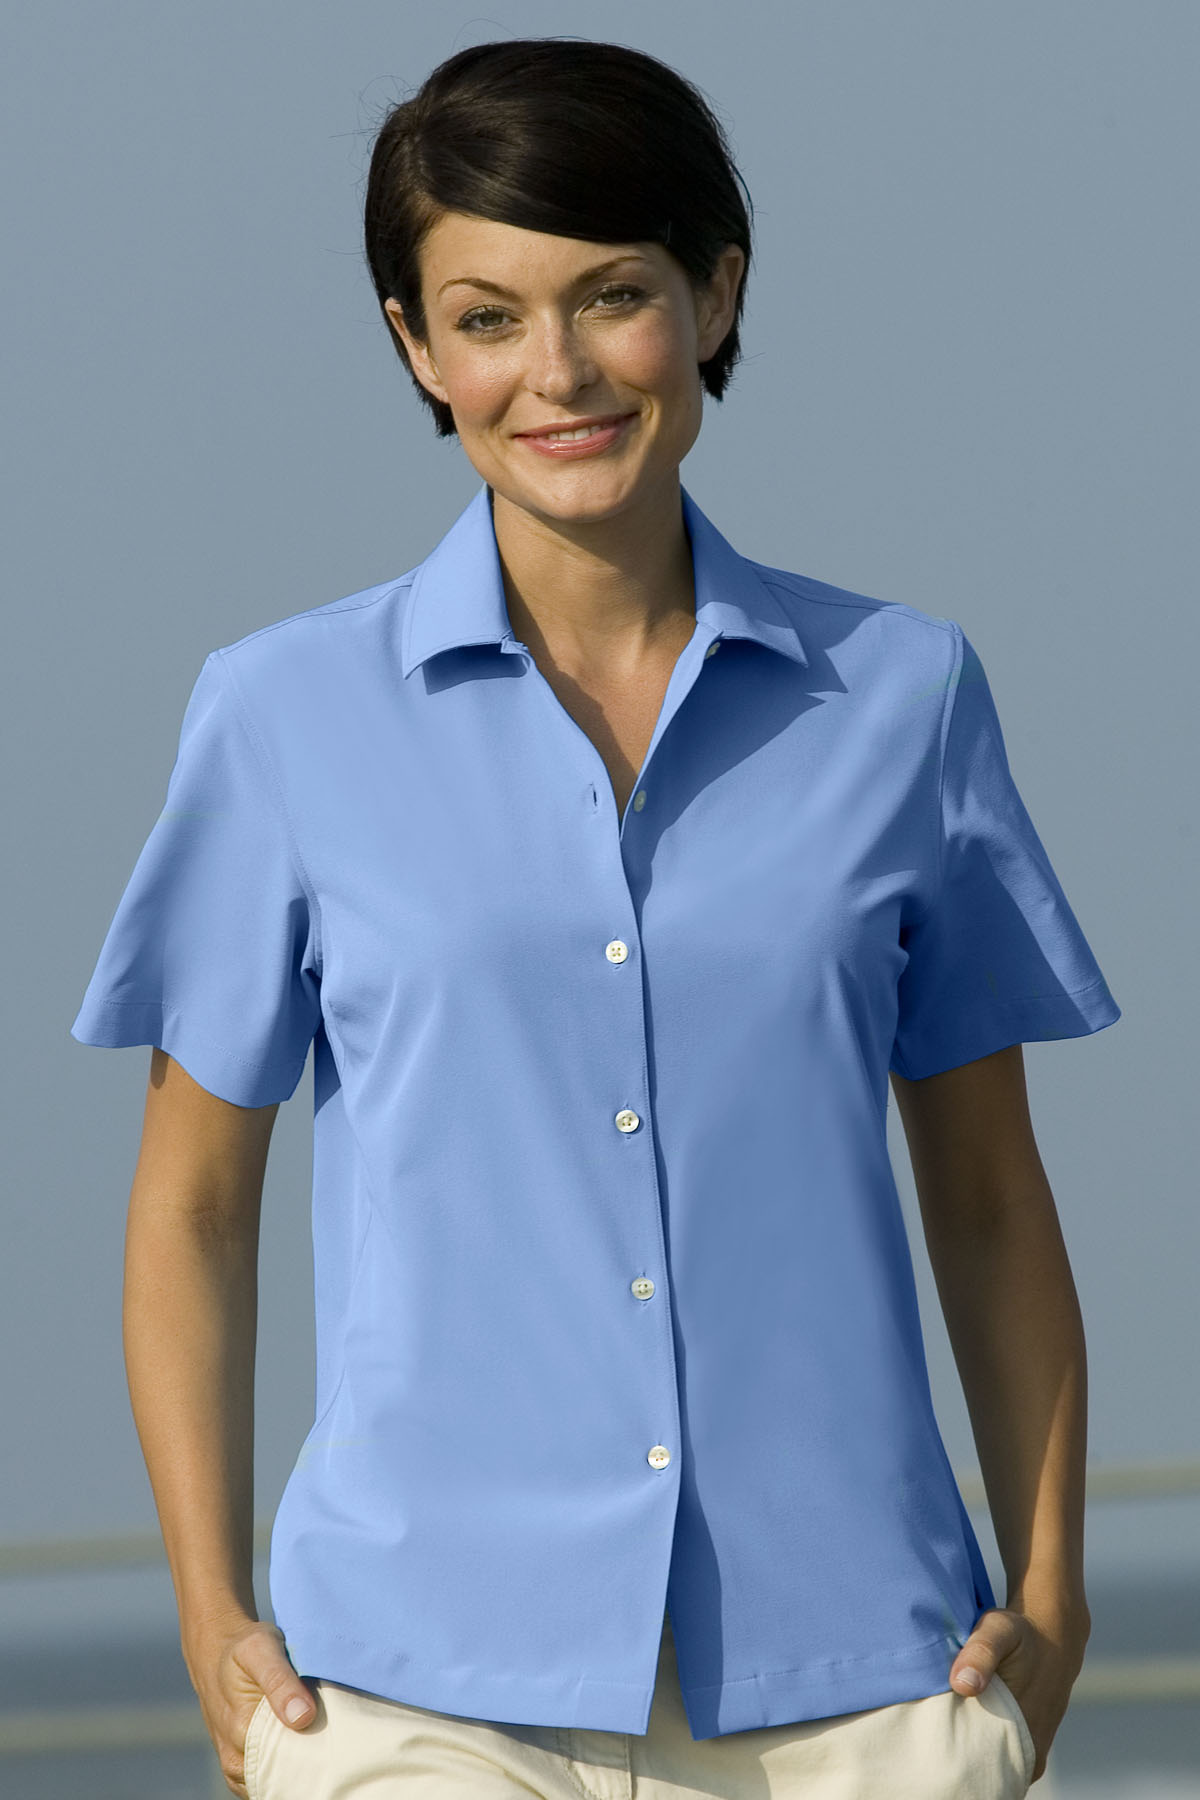 Vansport 1846 - Women's Woven Camp Shirt